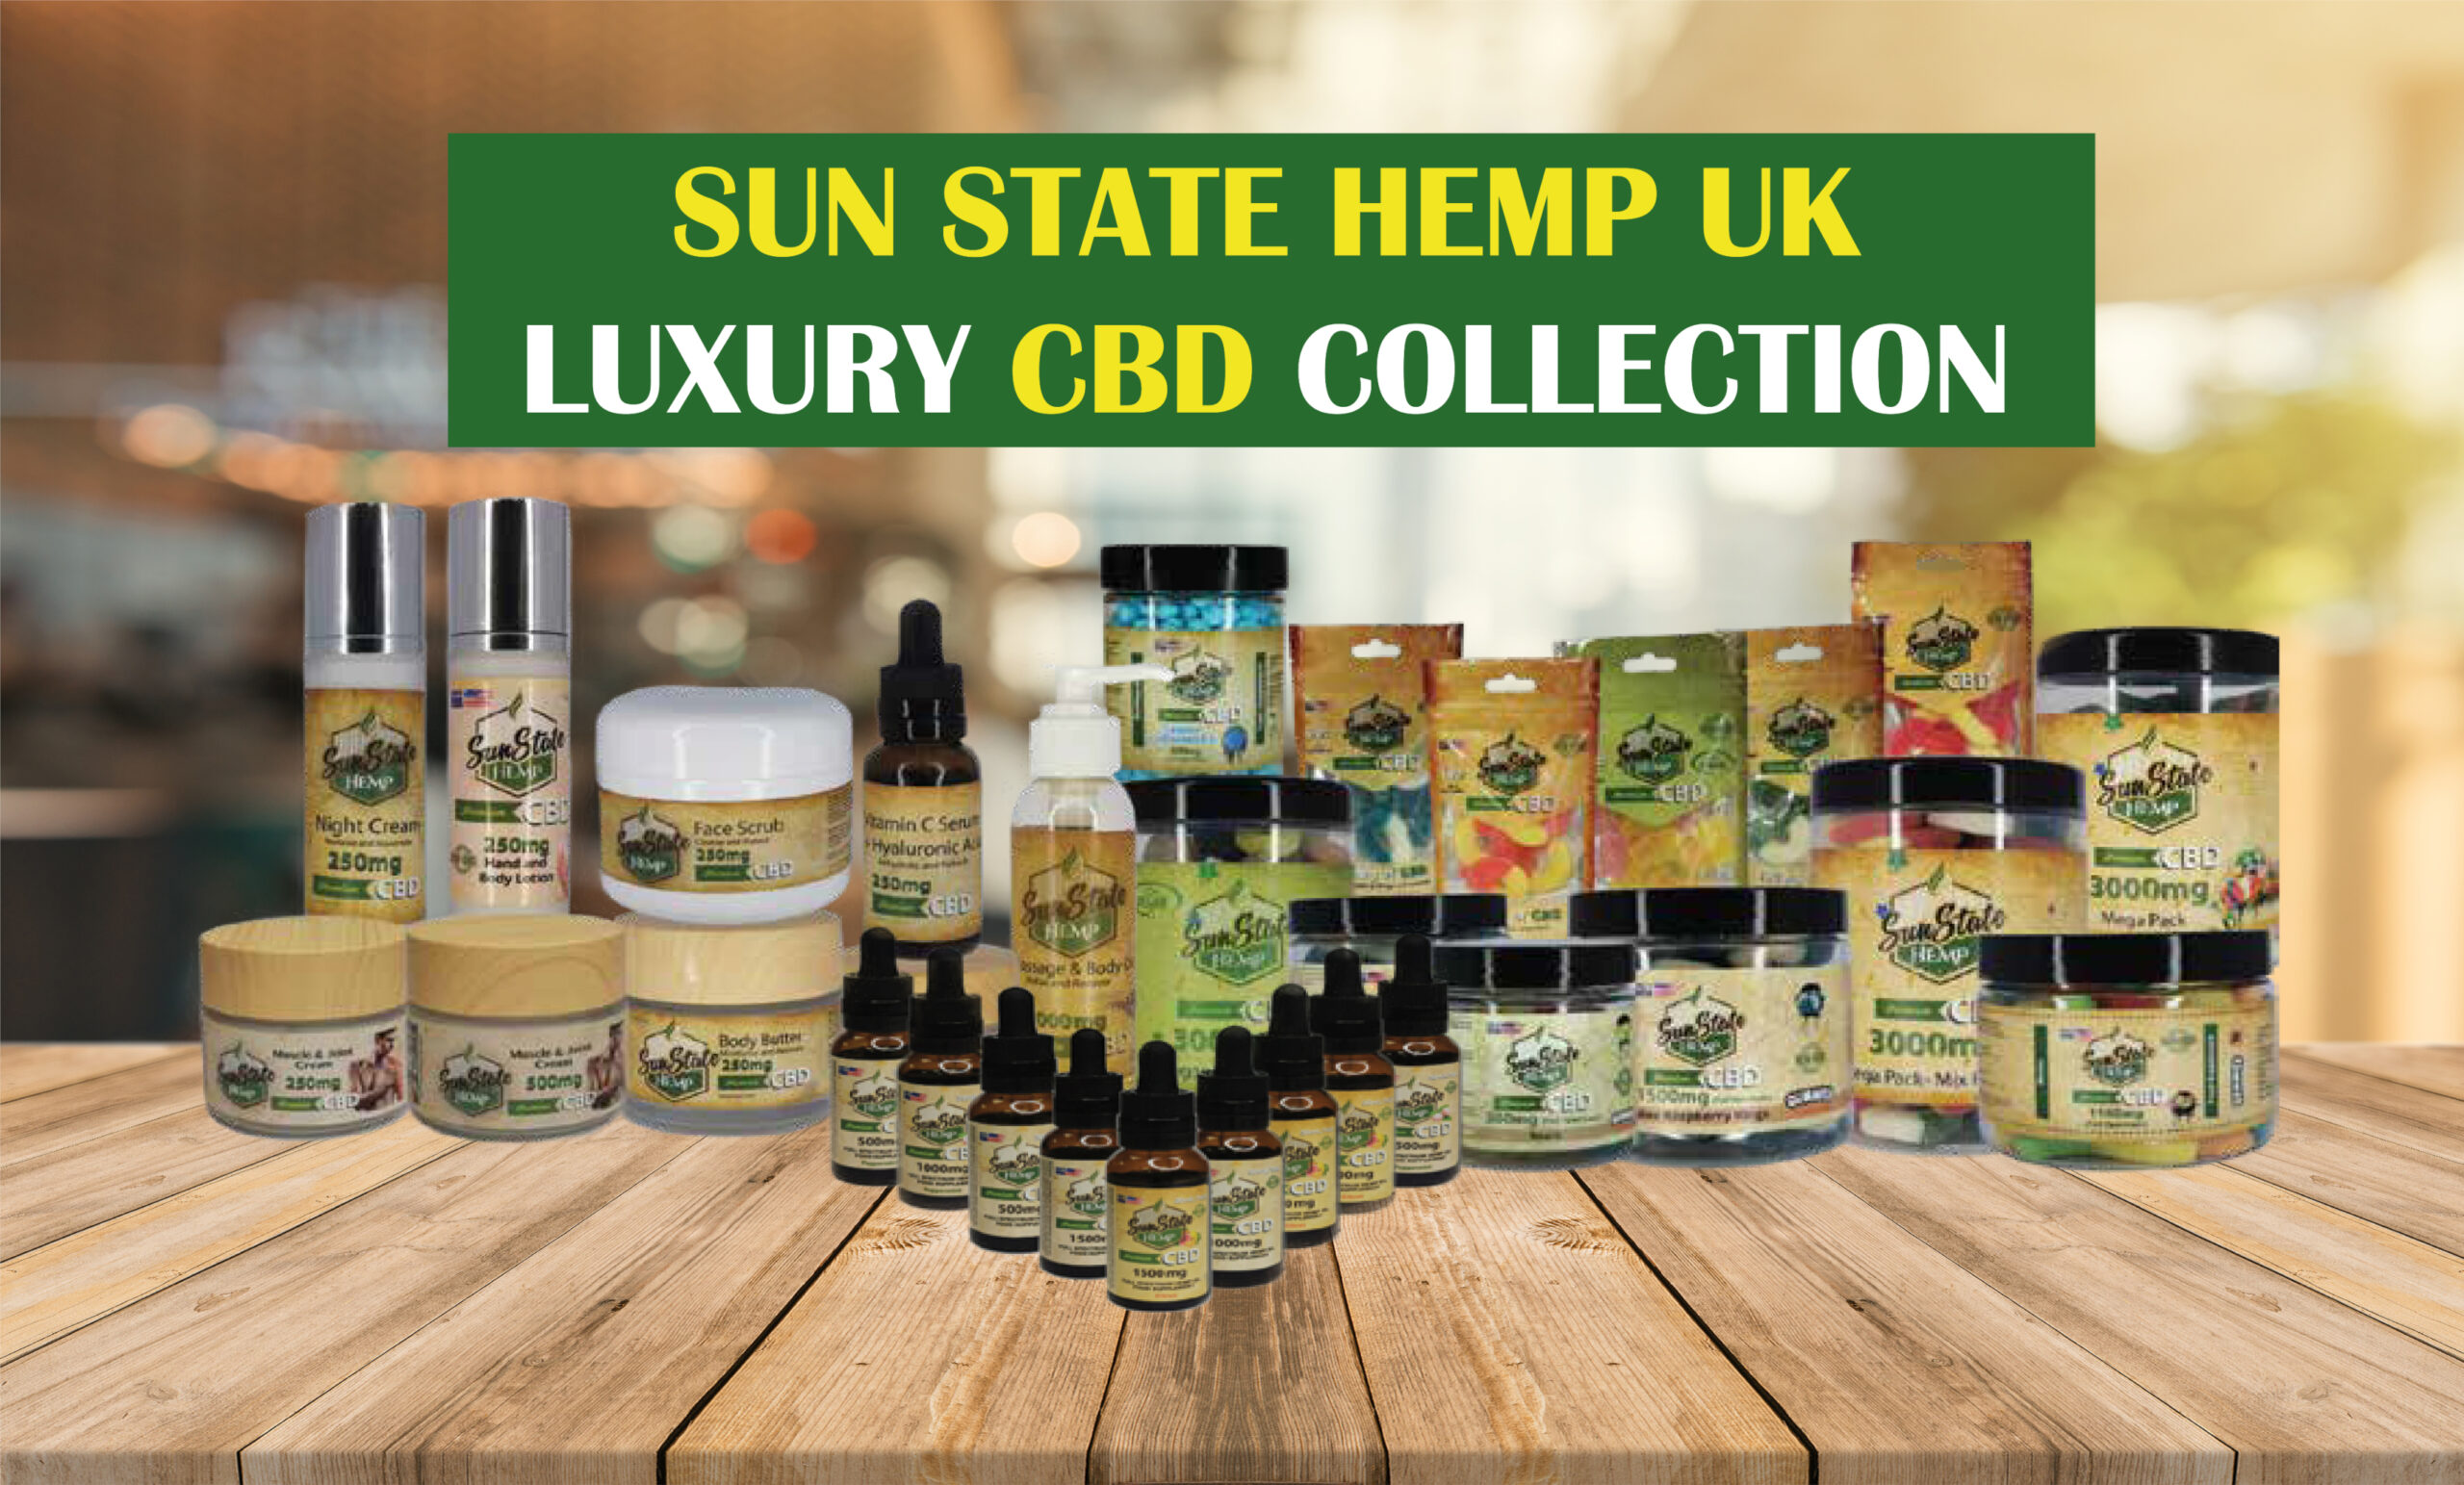 Sunstatehemp